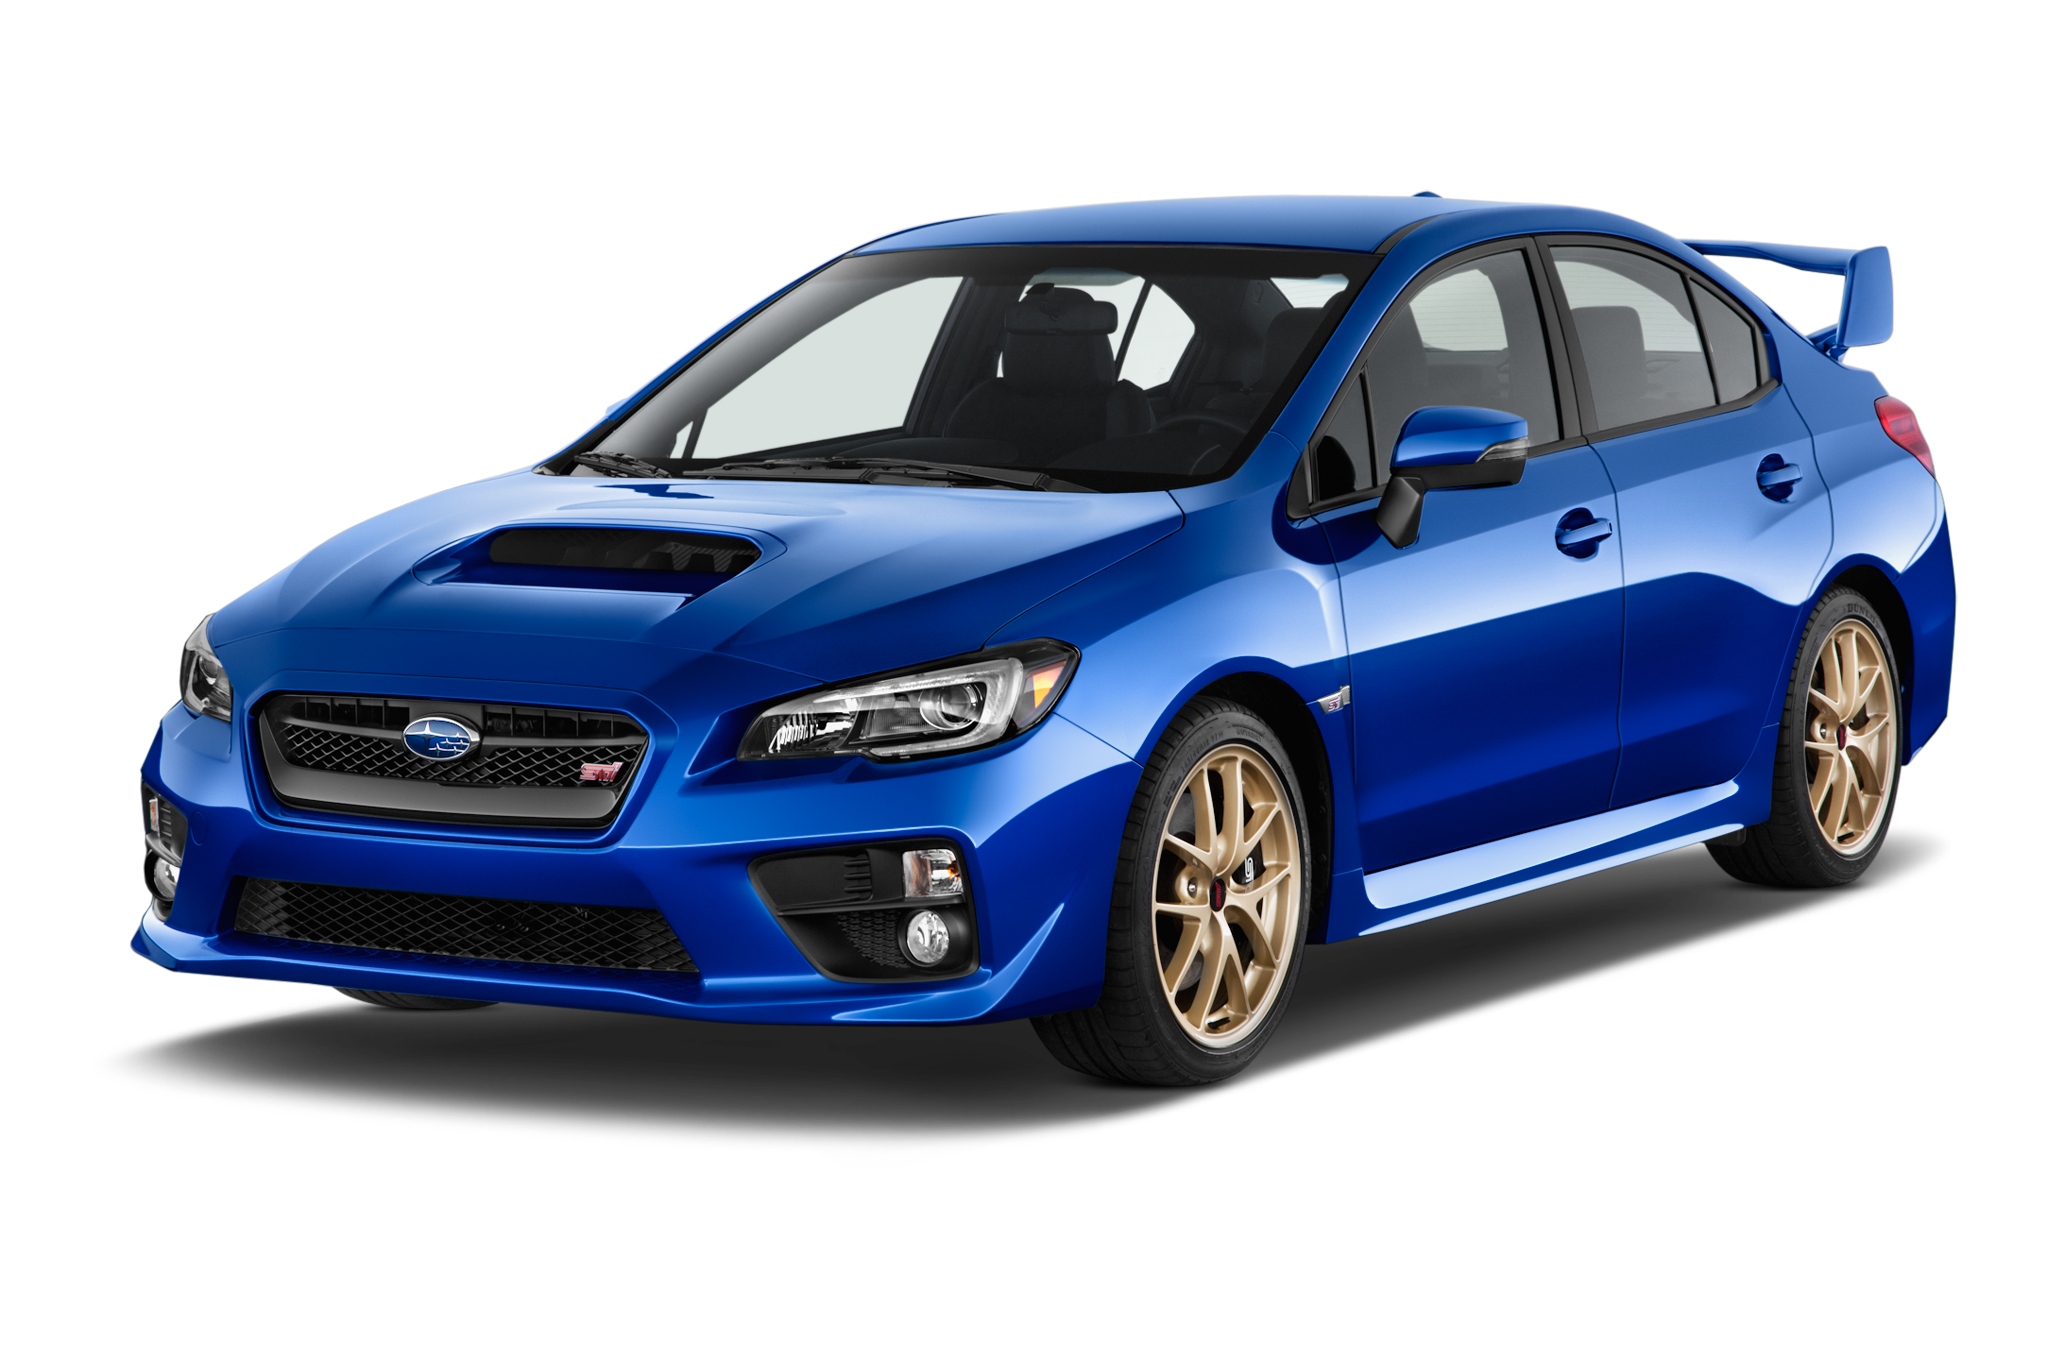 2016 subaru wrx wrx sti receive new infotainment safety systems. Black Bedroom Furniture Sets. Home Design Ideas